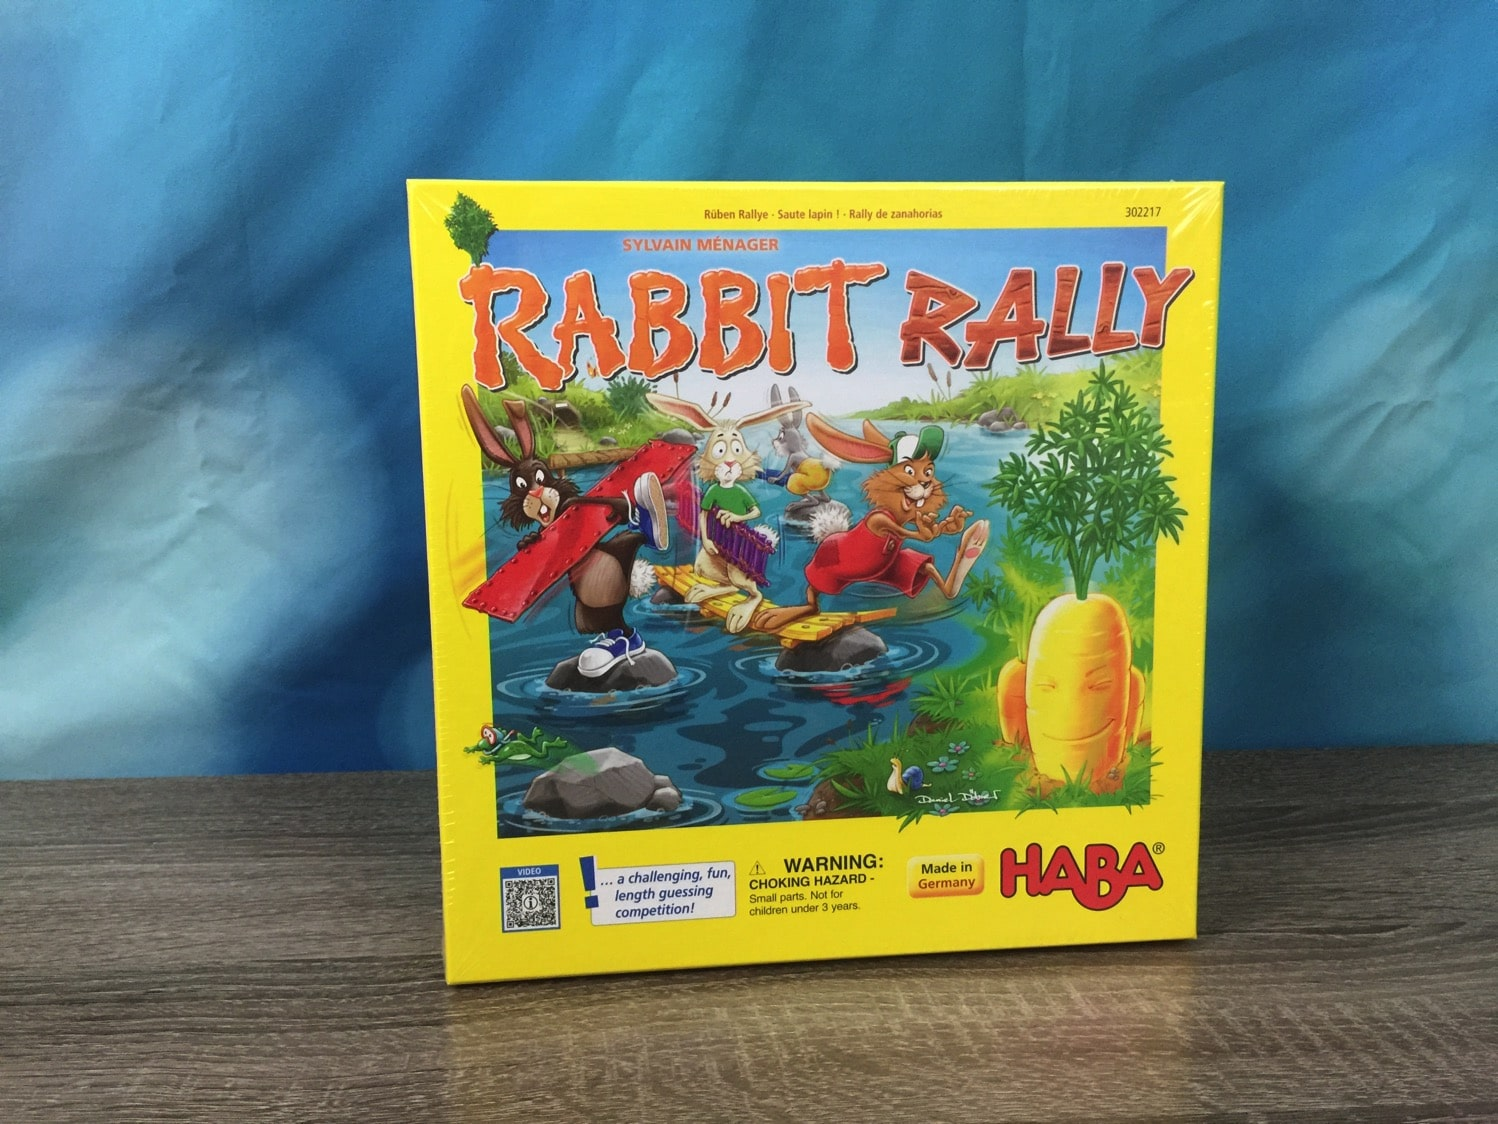 Rabbit Rally by HABA game